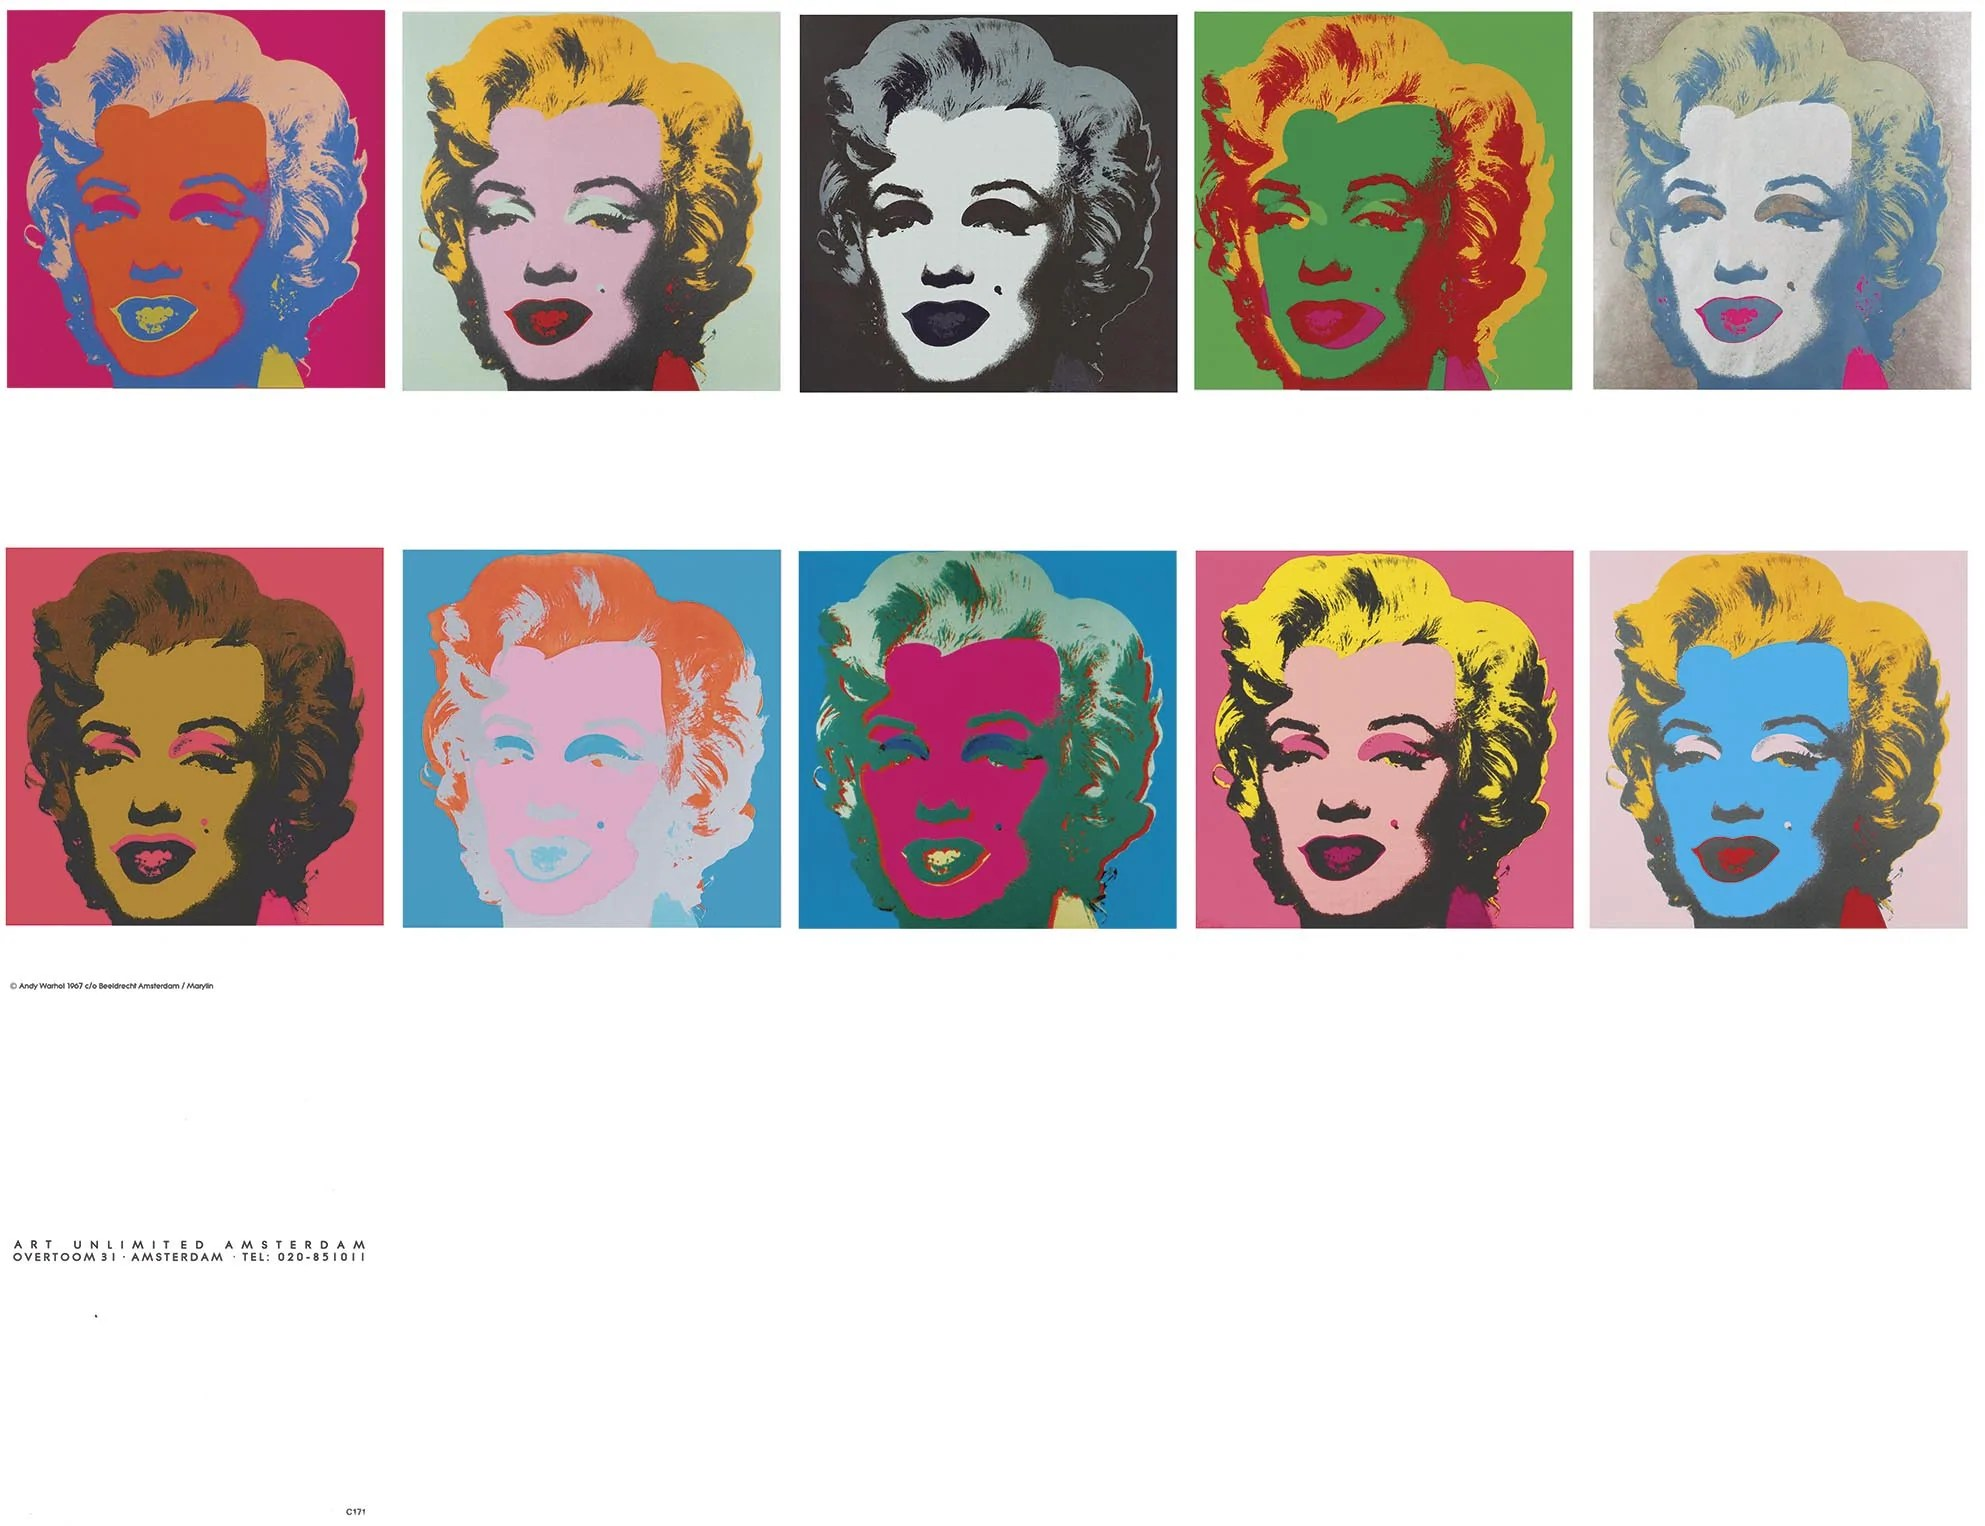 Warhol Amsterdam Marilyn Monroe Cards1967 By Andy Warhol